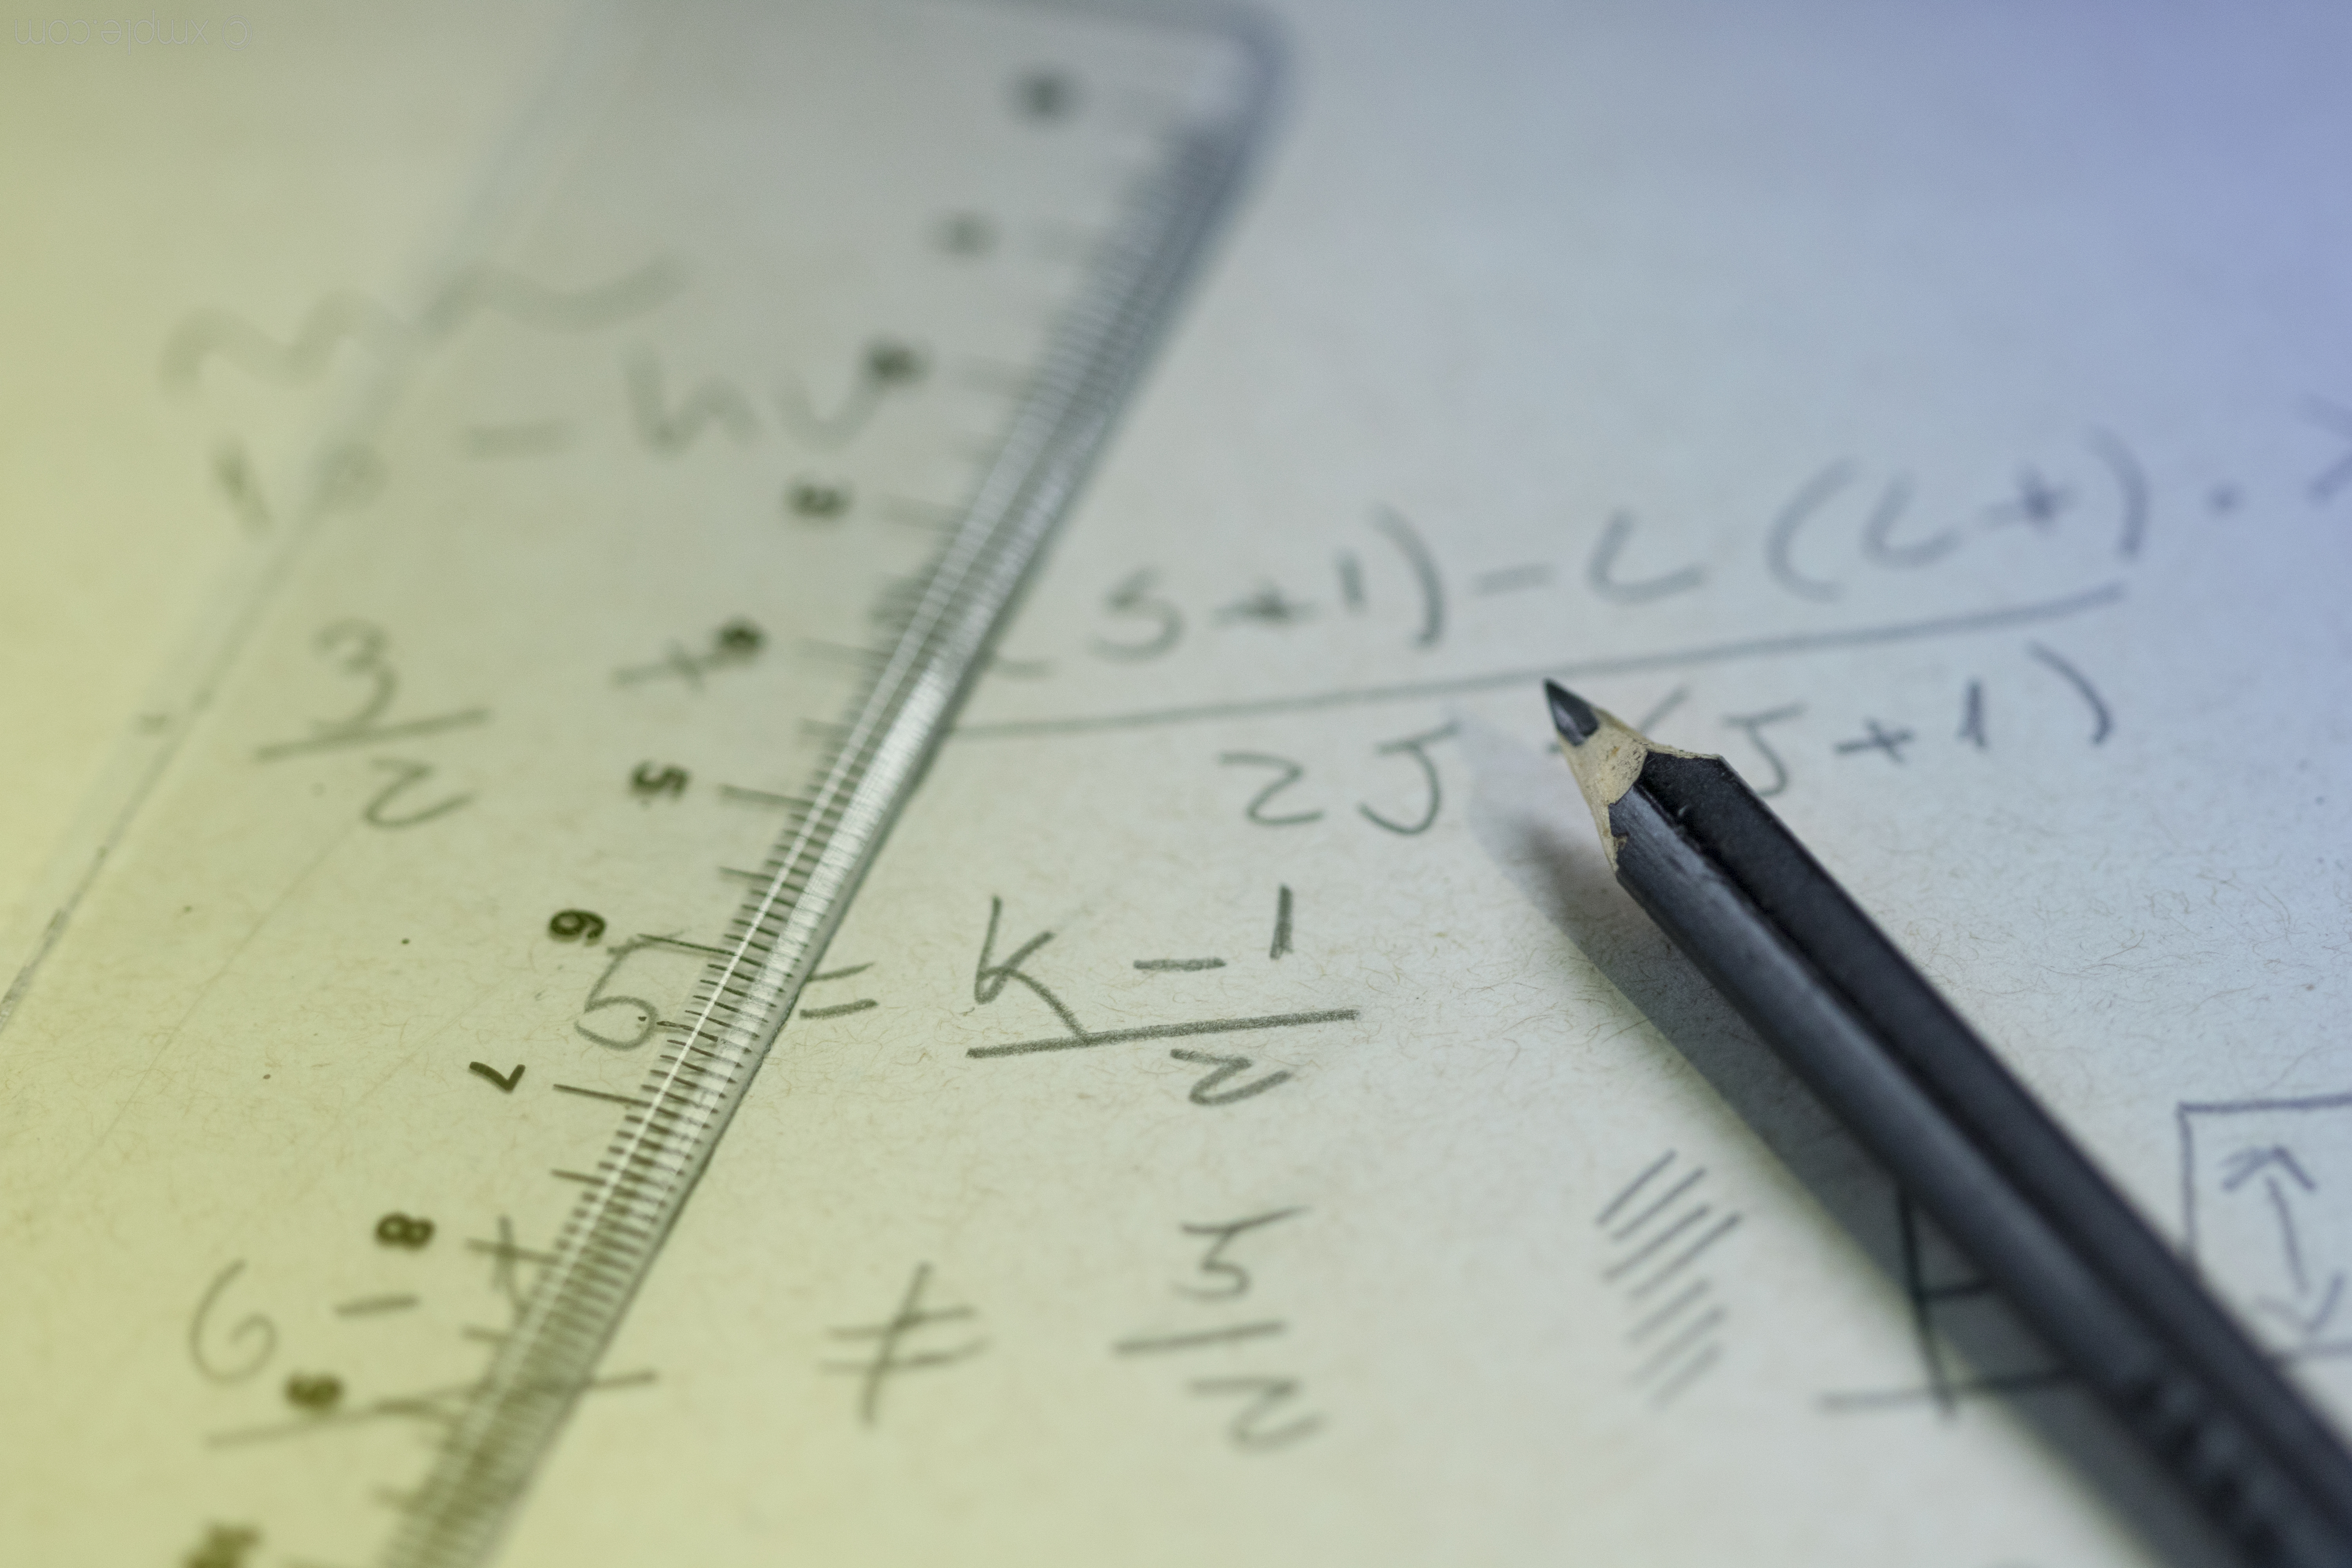 How To Find An Equation Given A Table Of Numbers Sciencing